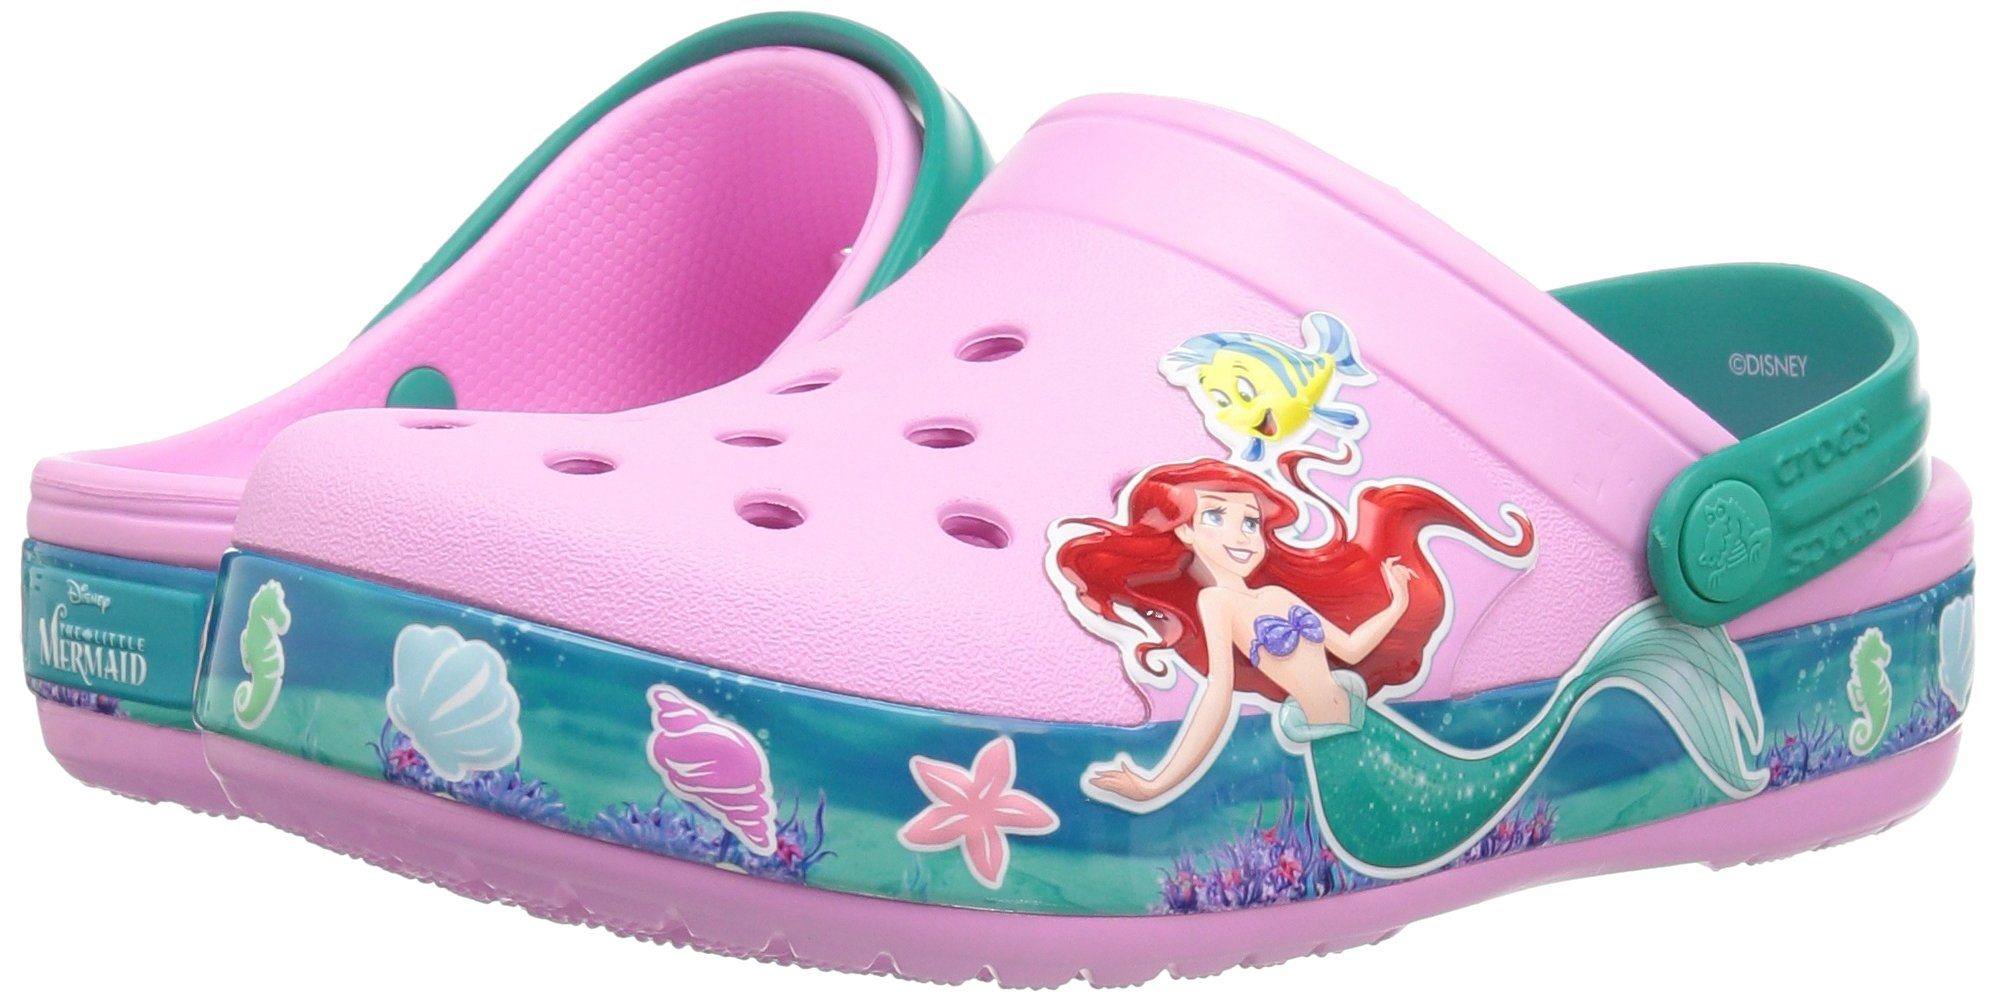 Crocs Unisex-Kids  CB Princess Ariel Clog K , carnation , C10 M US Toddler by Crocs (Image #6)